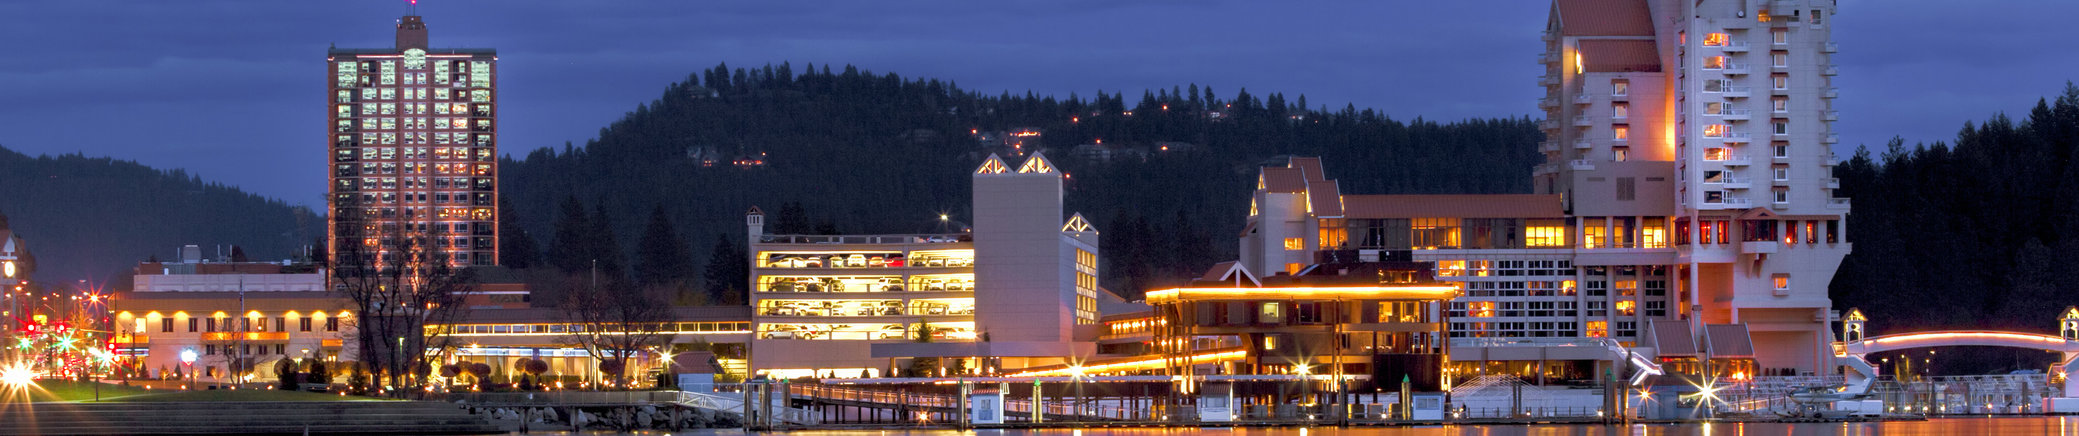 Downtown Coeur d'Alene, Idaho in evening